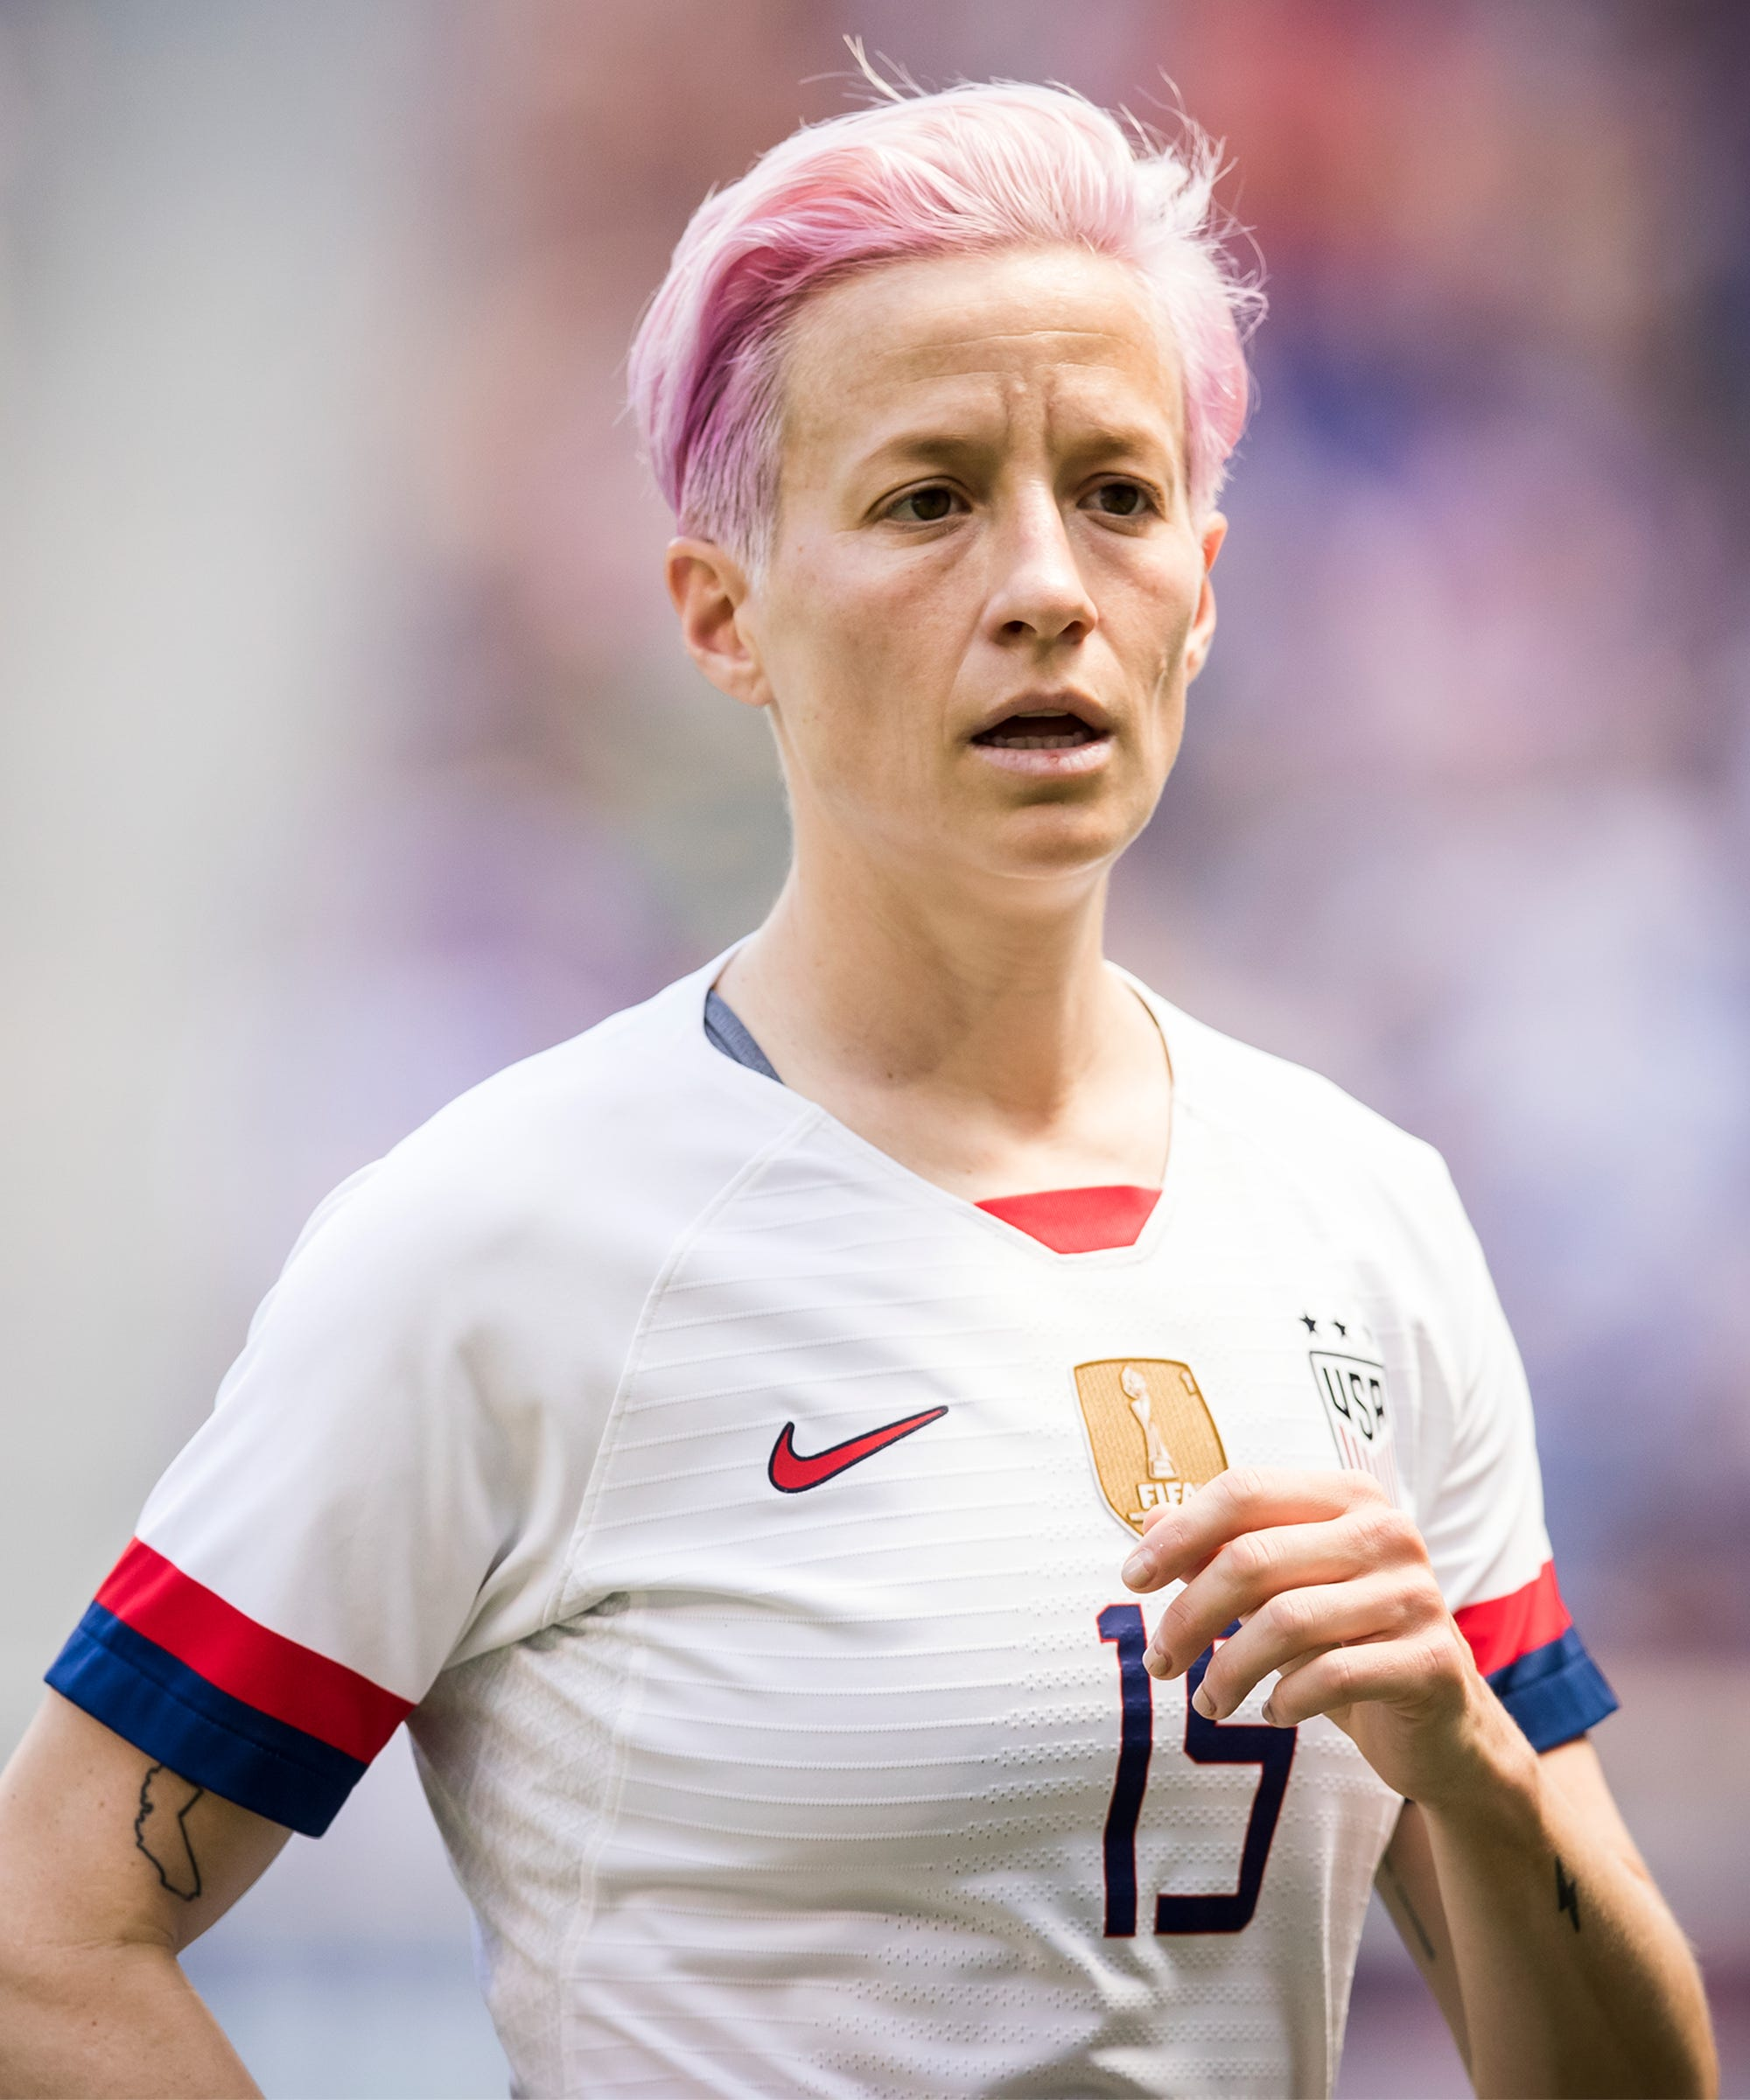 """Megan Rapinoe Wants To Know: Why The """"Resistance"""" To Paying Women In Soccer?"""